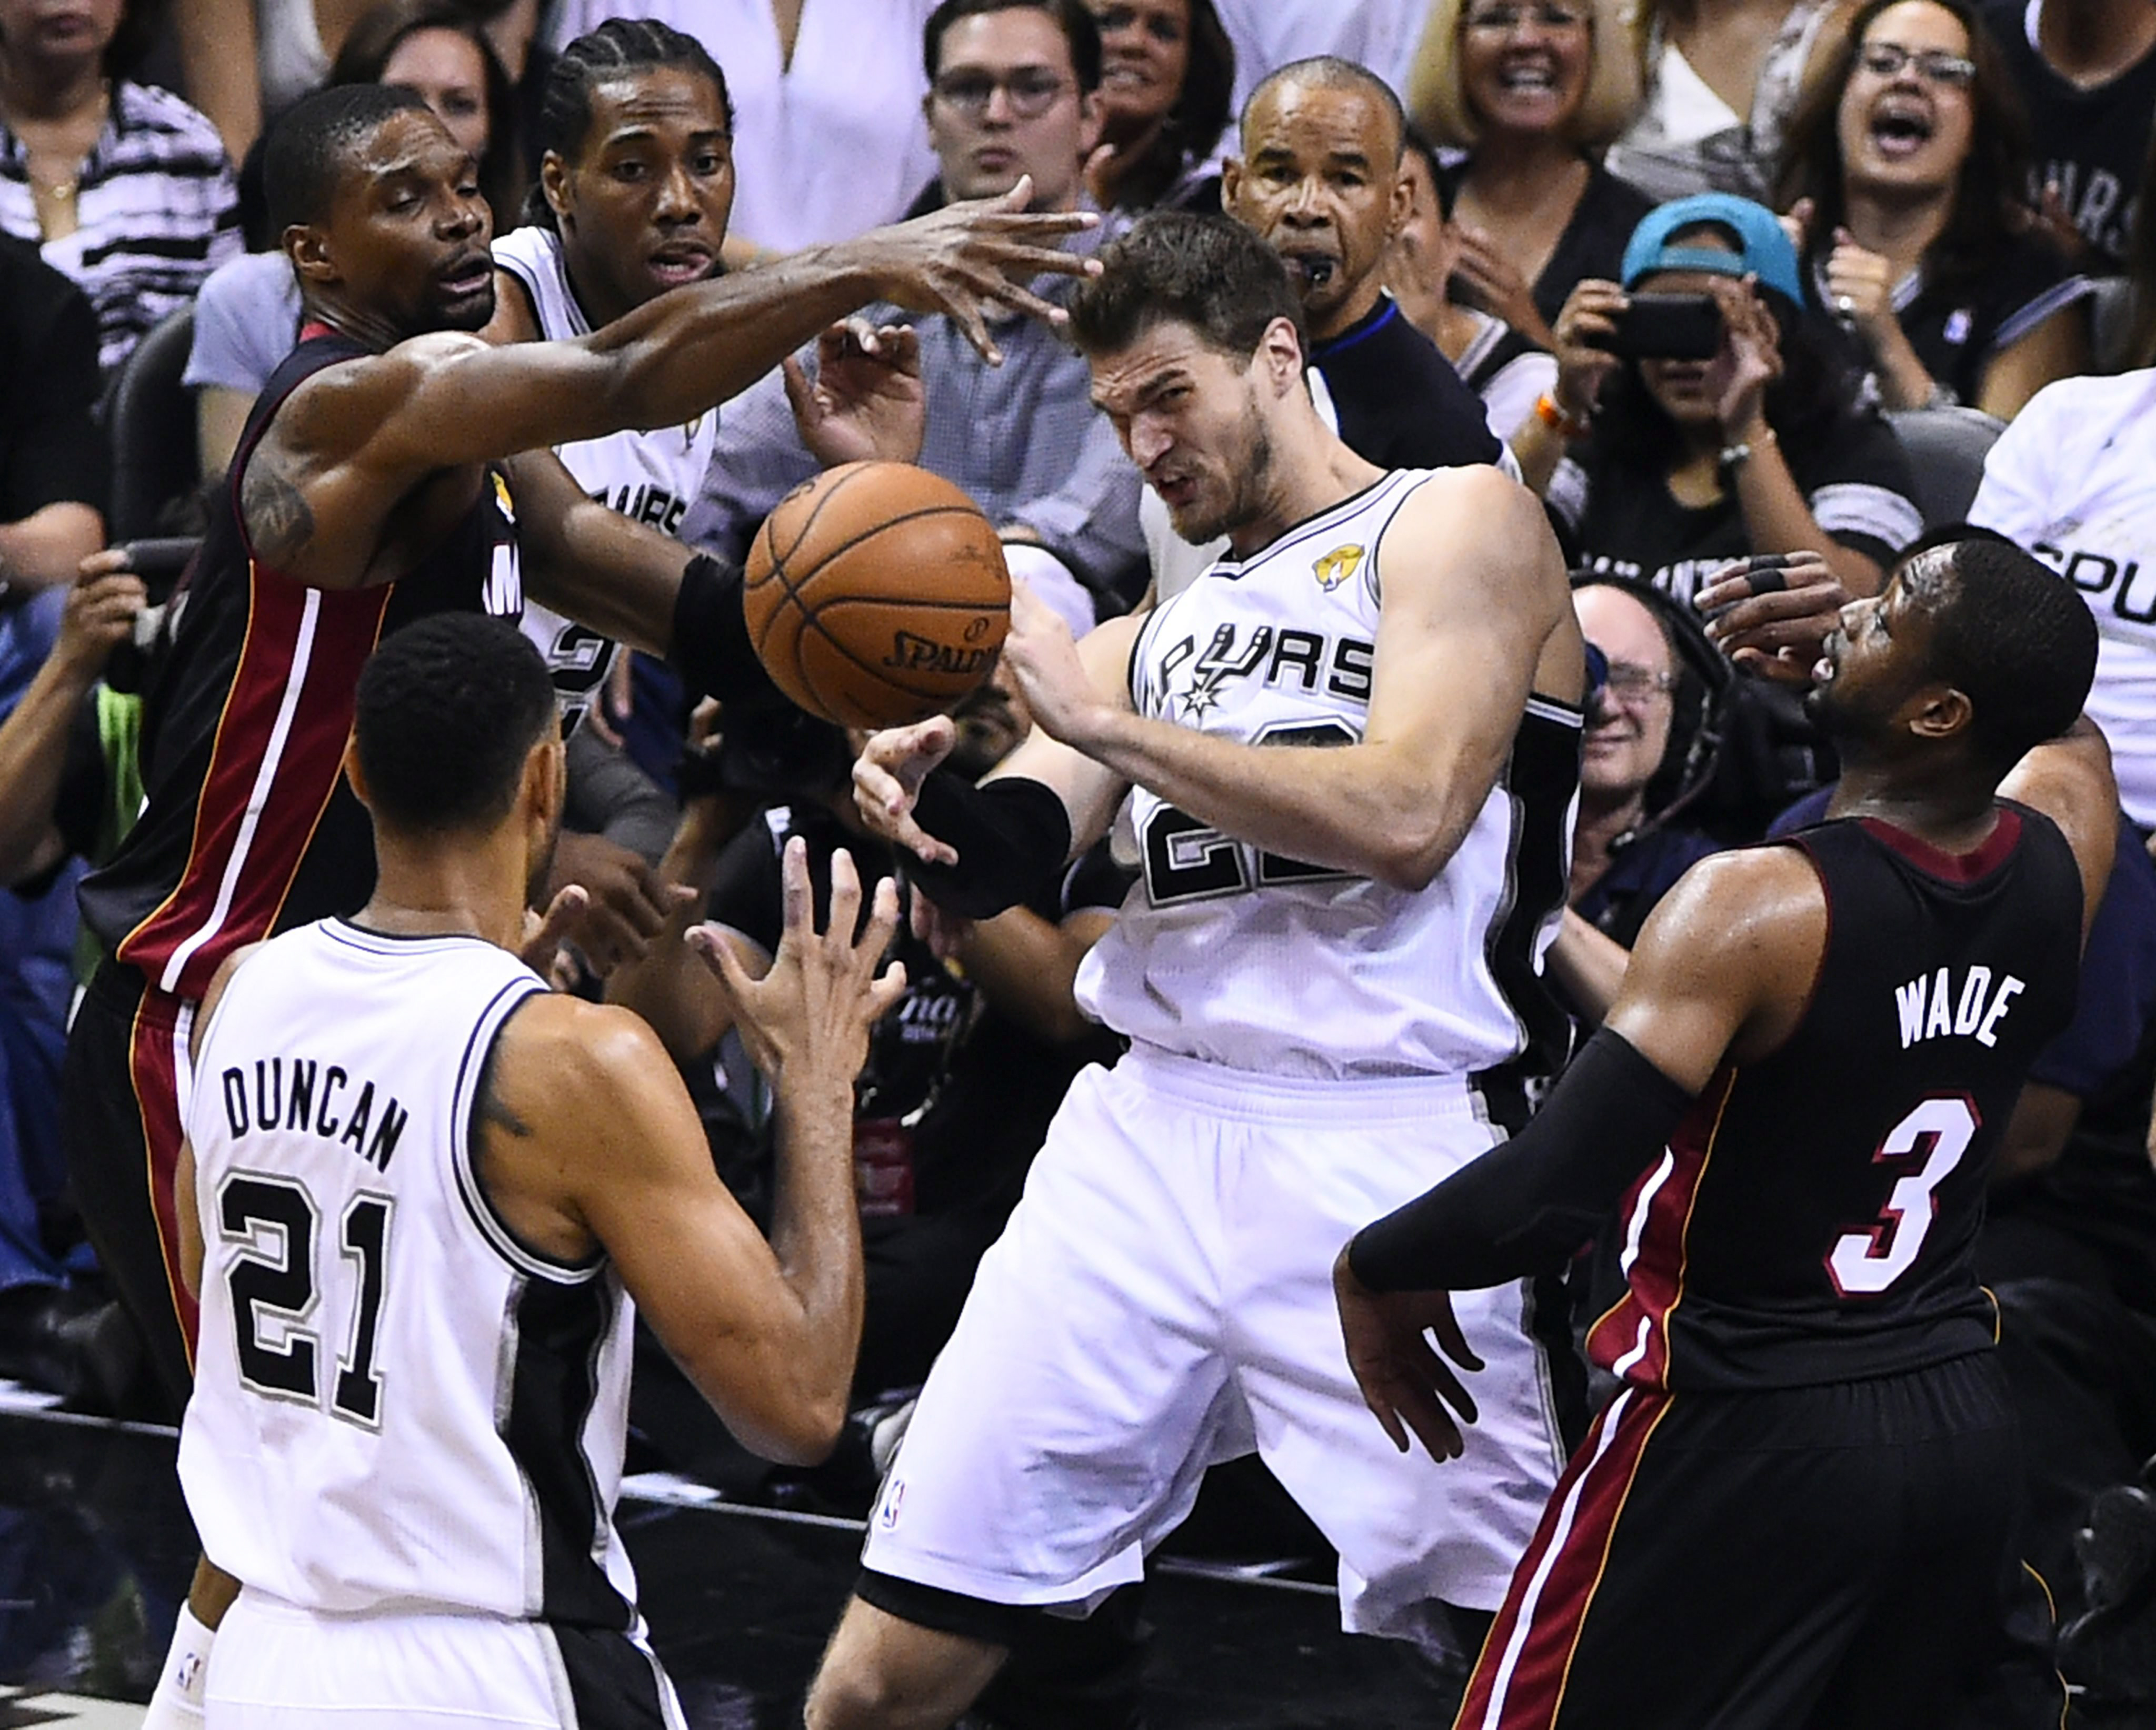 San Antonio Spurs center Tiago Splitter (C) passes off to San Antonio Spurs forward Tim Duncan (2-L) as Miami Heat center Chris Bosh (L) and Miami Heat guard Dwyane Wade (R) defend in the first half of their NBA Finals Game 2 in San Antonio on June 8, 2014.